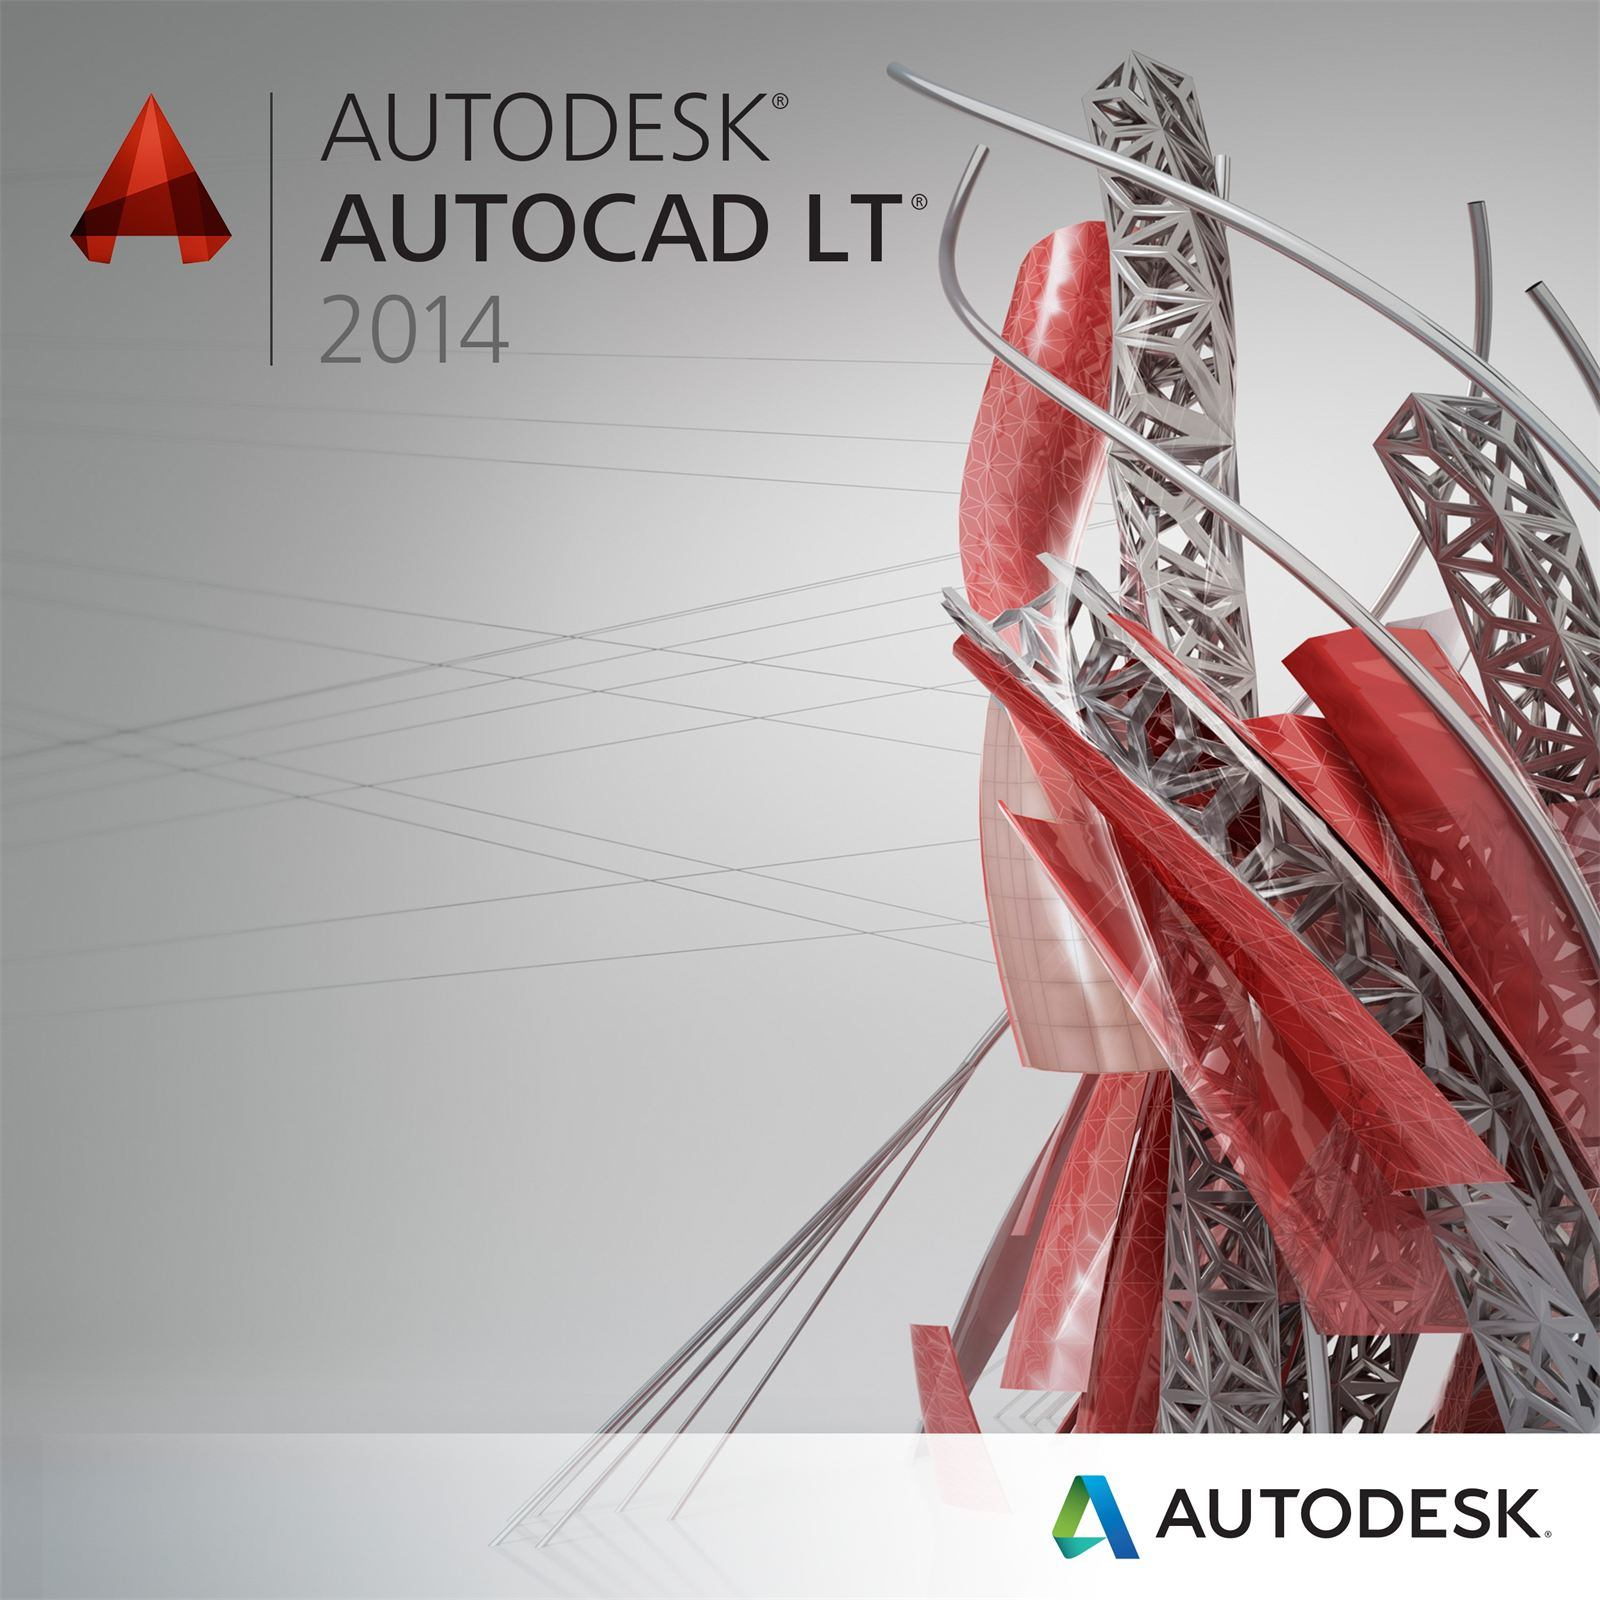 2022026-Autodesk-AutoCAD-LT-AutoCAD-LT-Commercial-Maintenance-Plan-with-Advance